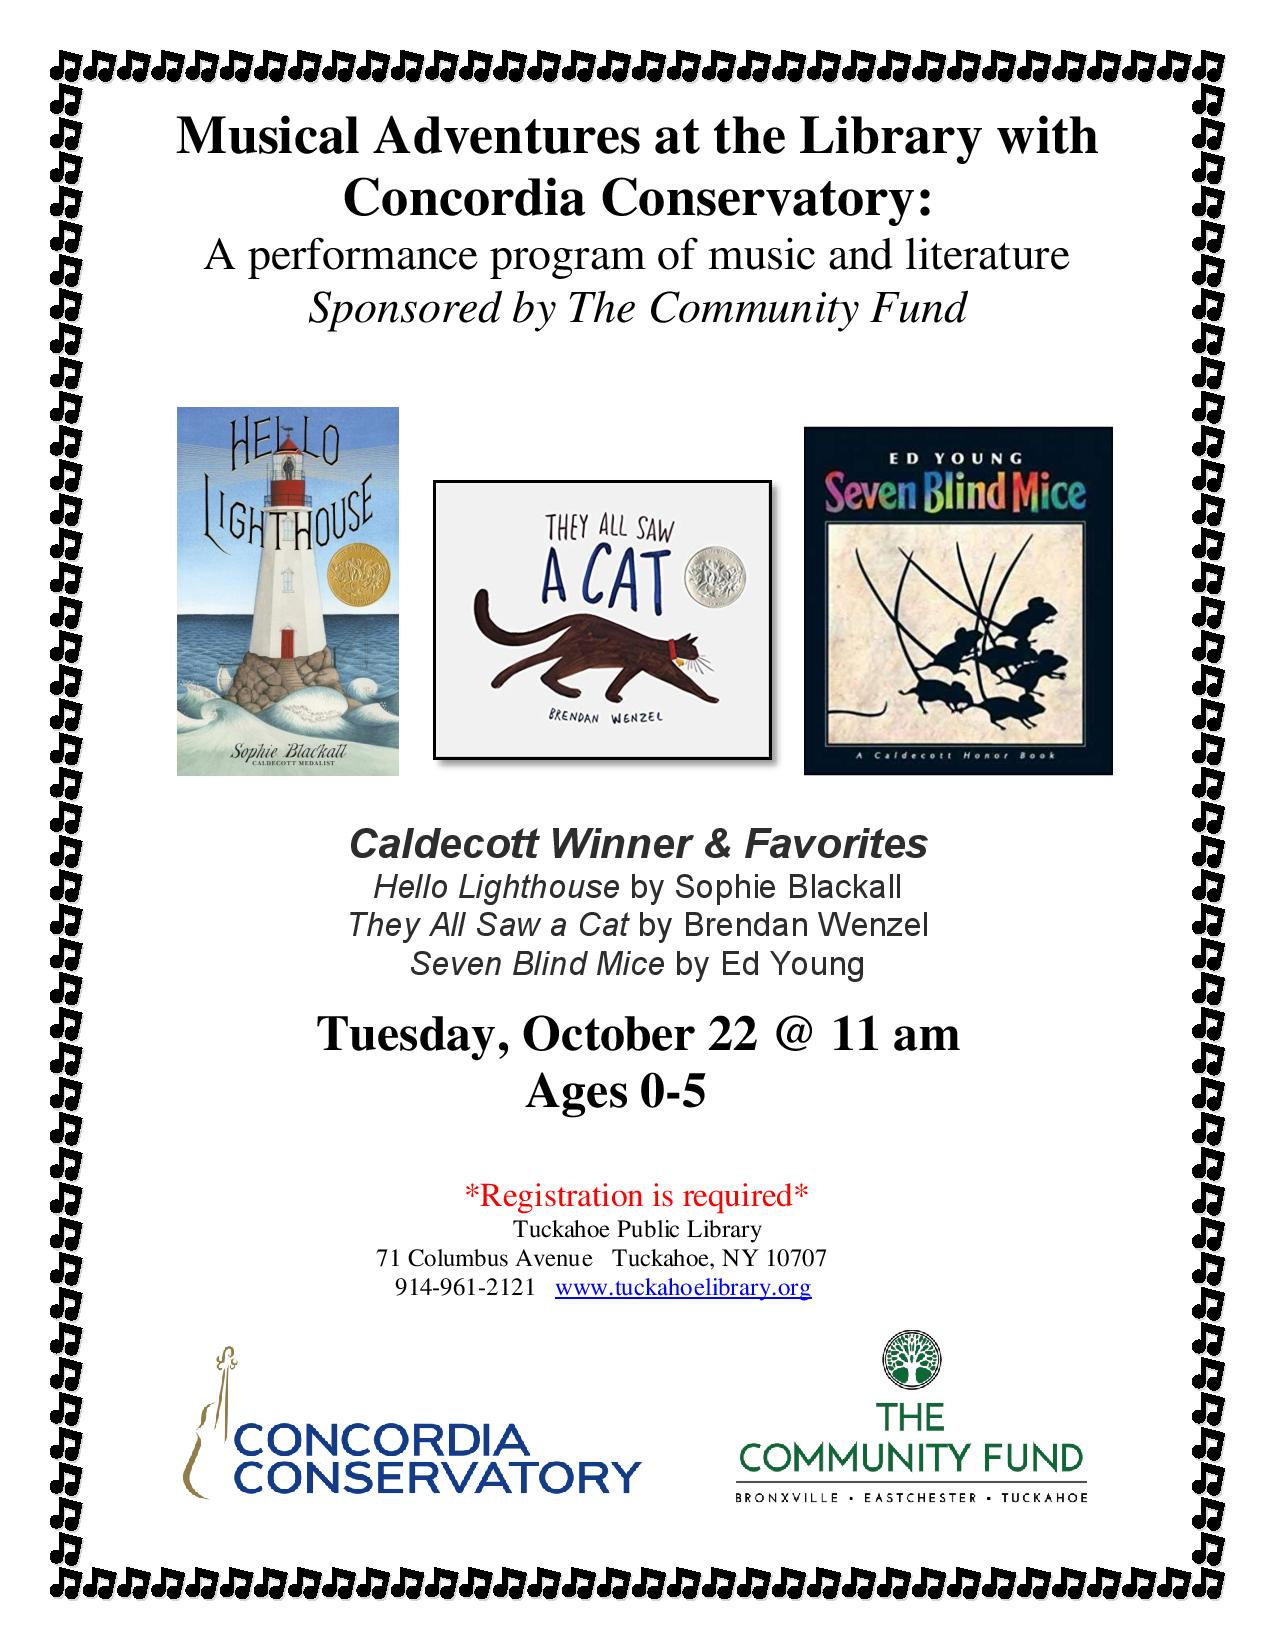 Musical Adventures with Concordia Conservatory